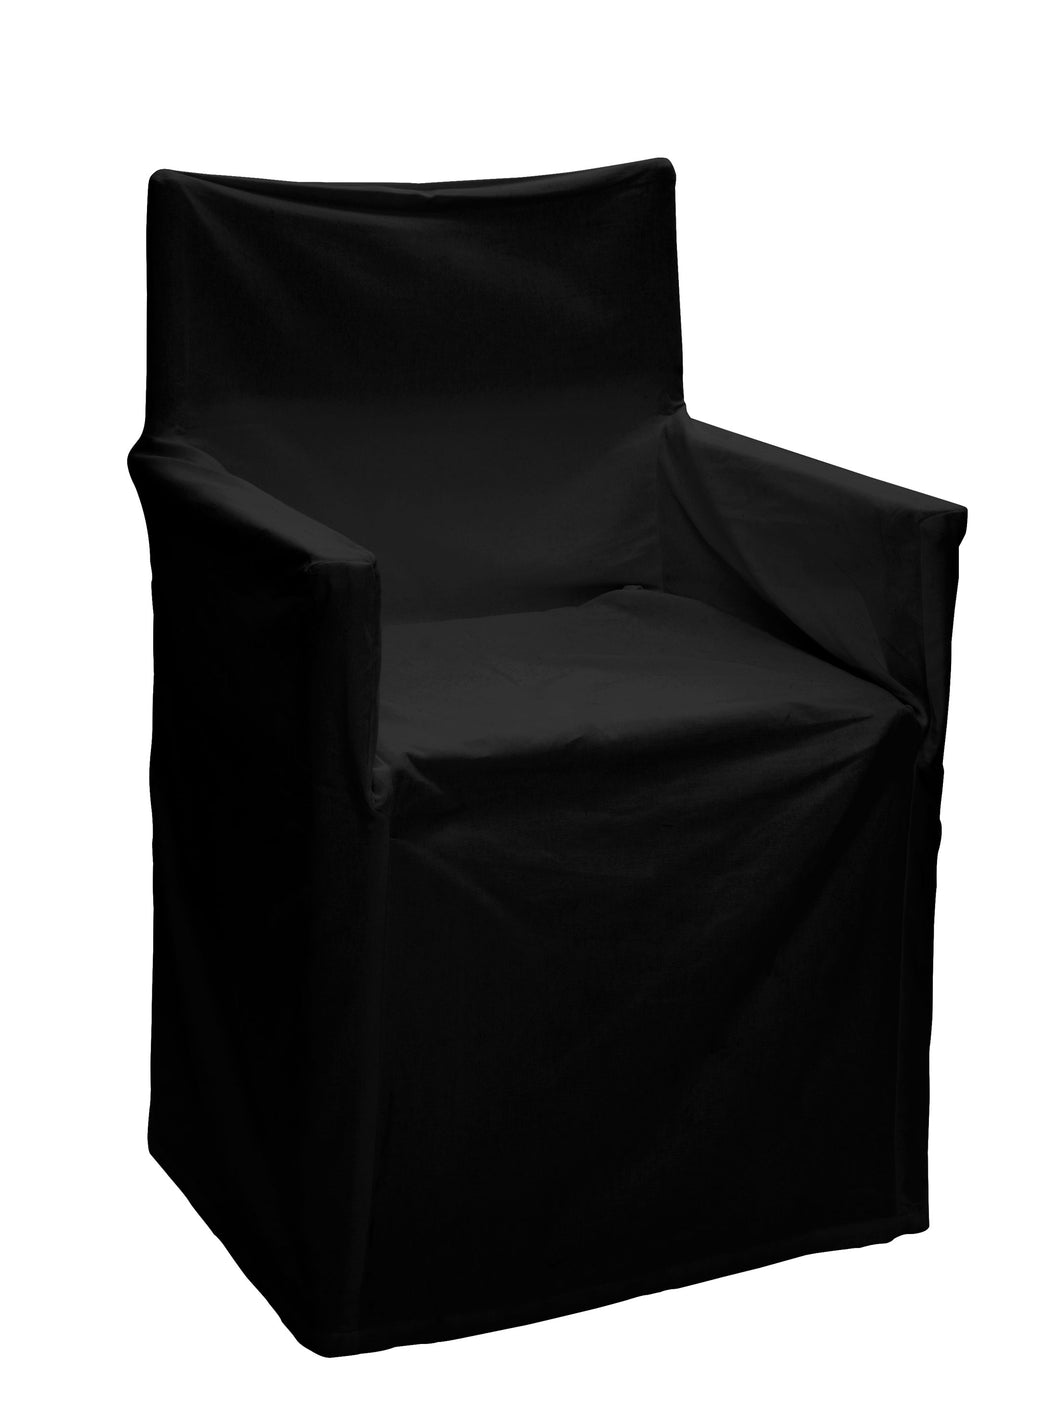 RANS Alfresco Director Chair Covers 100% Cotton